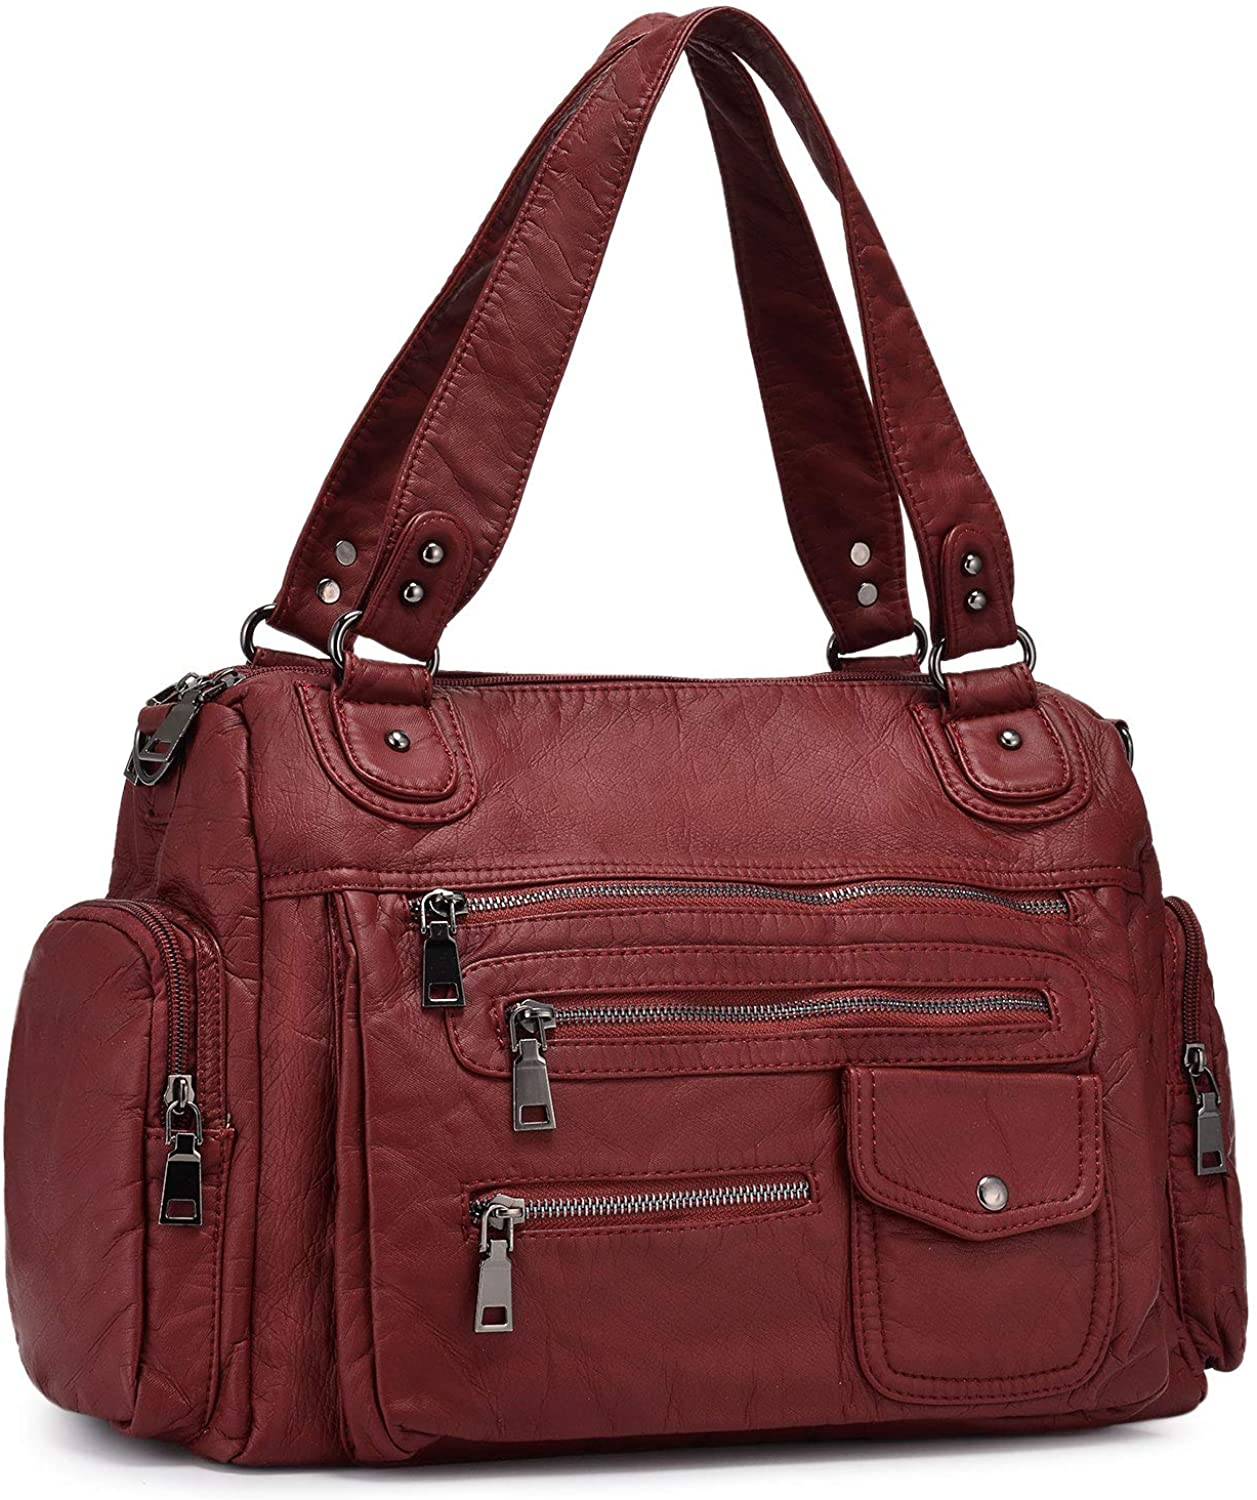 BAIGIO Women Tote Purses Roomy Washed Leather Bag Multiple Pockets Functional Satchel Shoulder Bags for Ladies